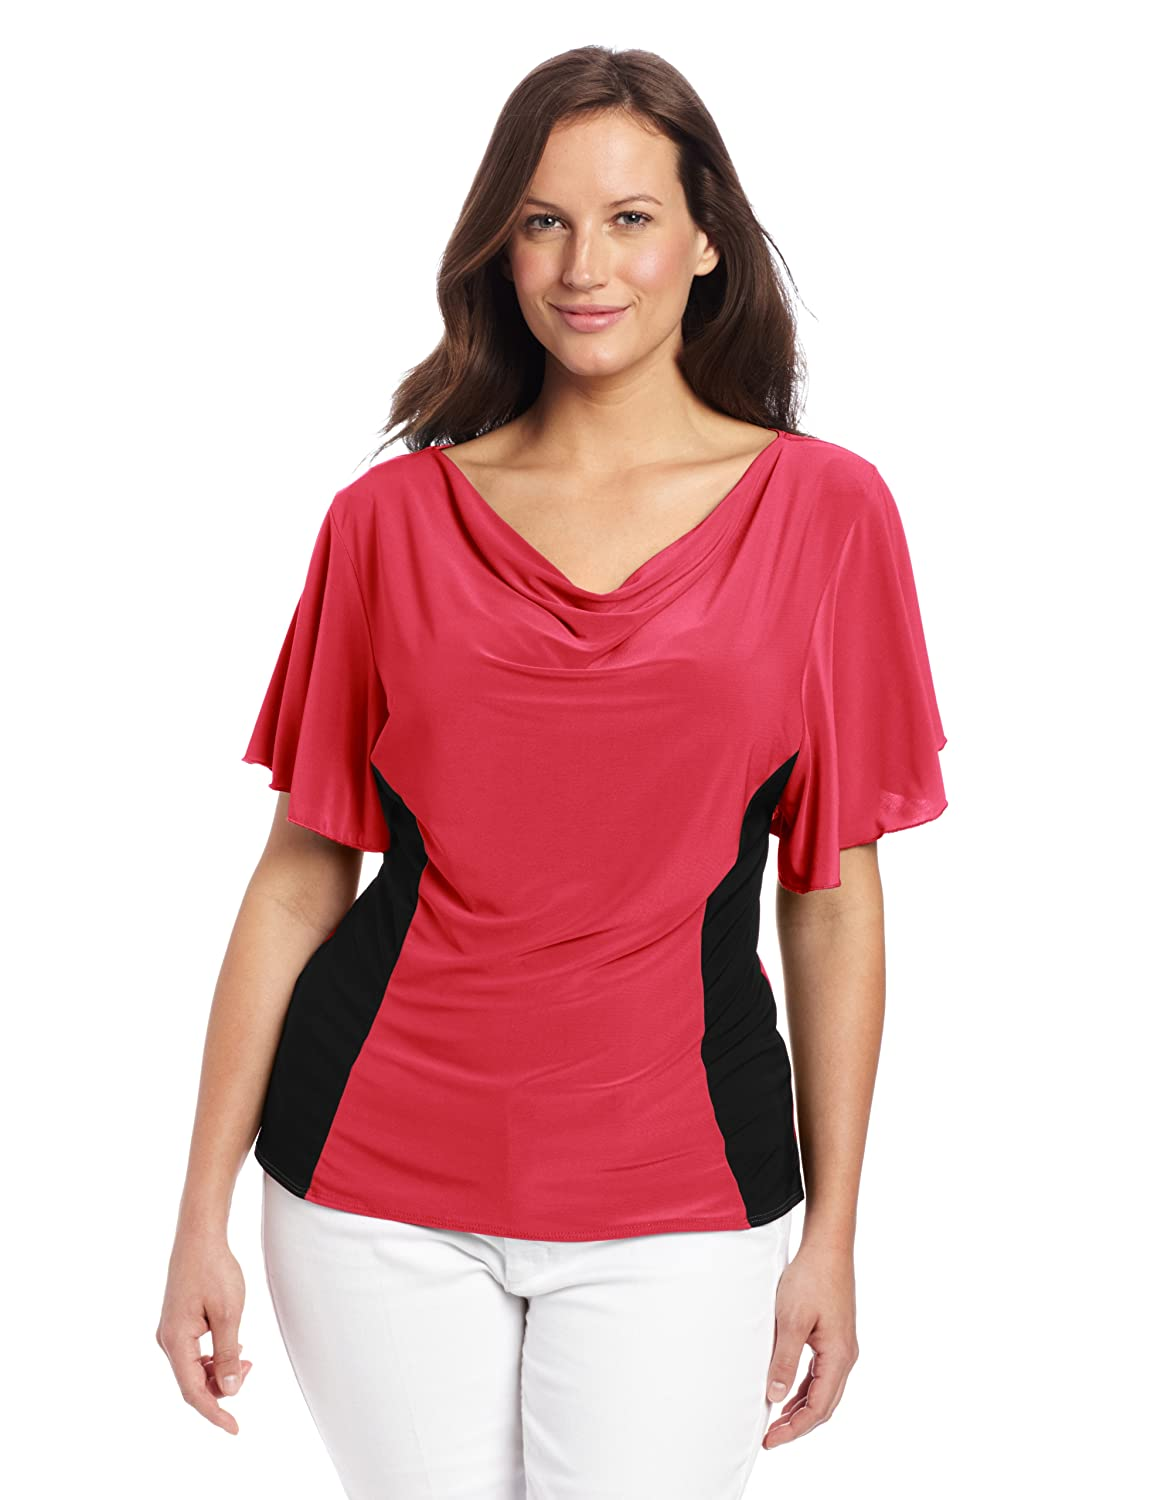 Star Vixen Women's Plus-Size Flutter Sleeve Colorblock Top Star Vixen Child Code 7508-IT-X